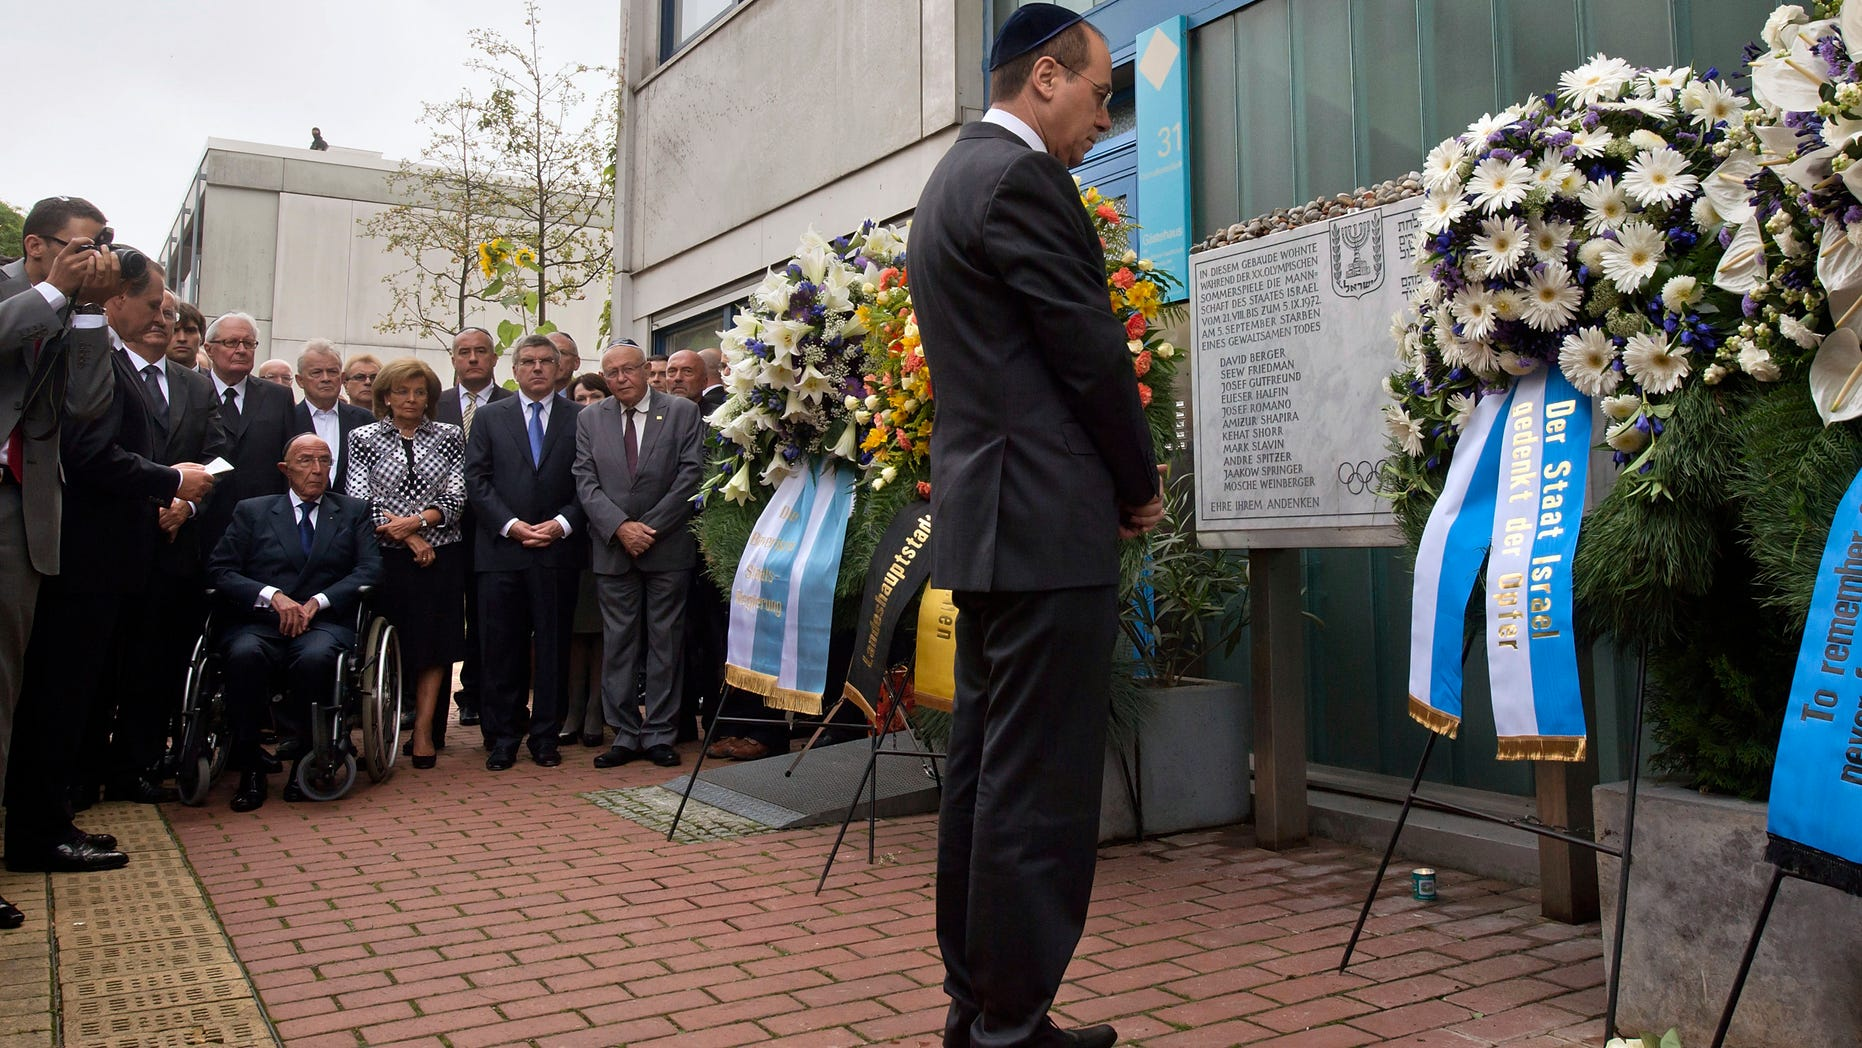 Israel's deputy Prime Minister Silvan Shalom, right, stands in front of wreaths at a memorial at the former accommodation building of the Israeli Olympic team in Munich, southern Germany, Wednesday, Sept. 5, 2012, during a commemoration ceremony for the assassination victims of the Olympic games in Munich in 1972. 17 people died in a failed liberation attempt of Israeli hostages, eleven of them of Israel's Olympic team, five terrorists and a German police officer. (AP Photo/dapd, Joerg Koch)